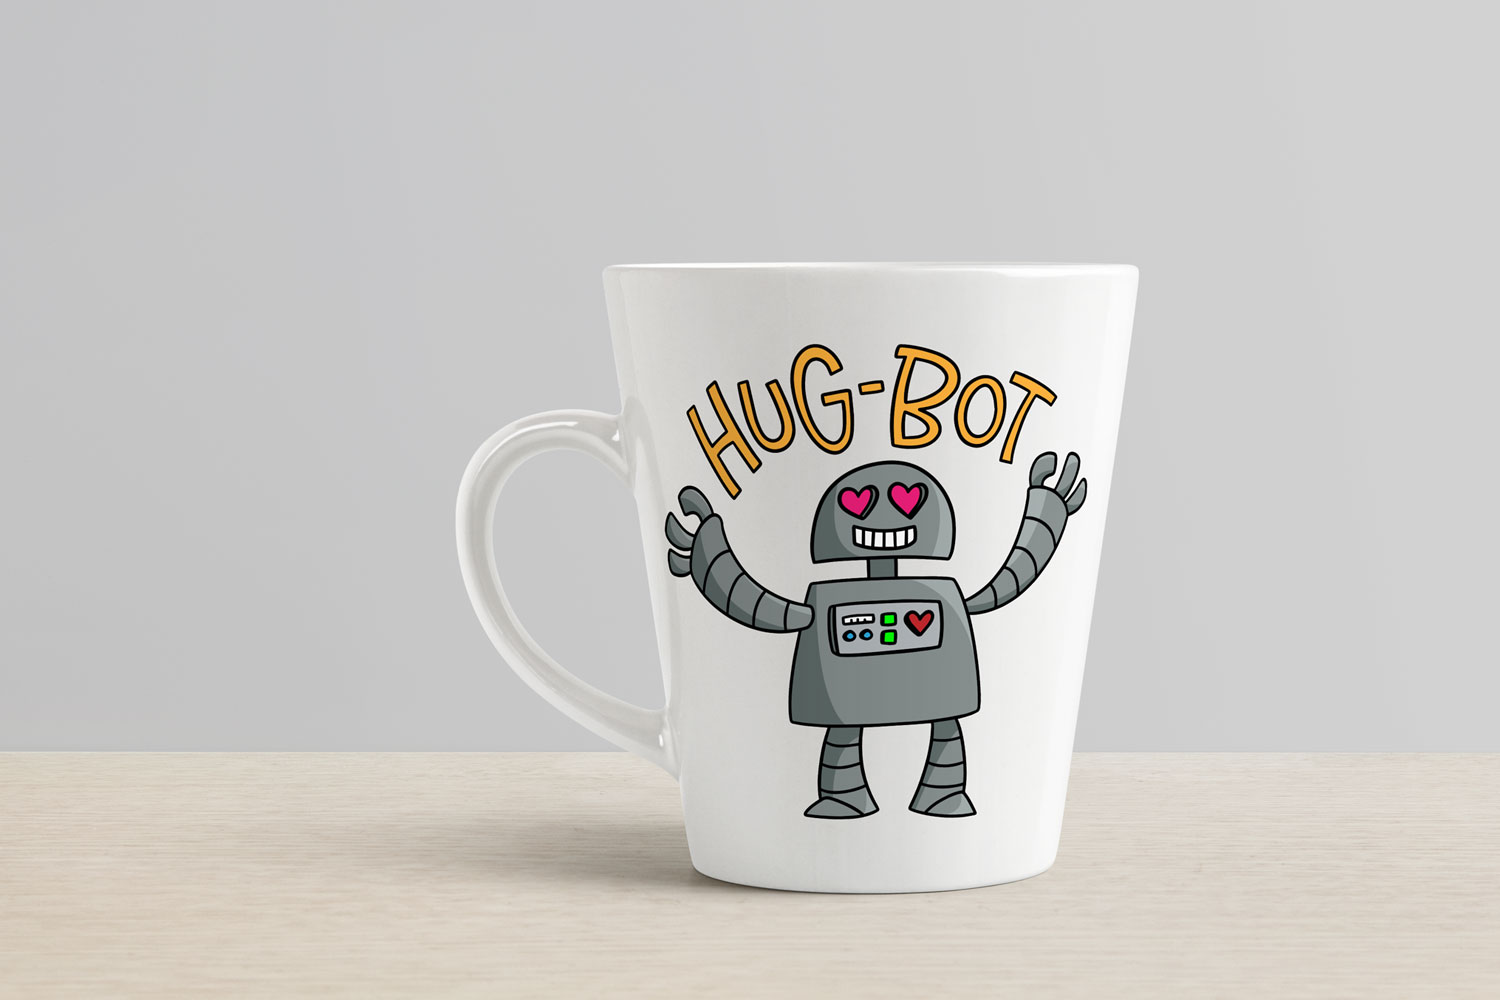 Hug-Bot - a cartoon robot programmed for hugging! example image 3